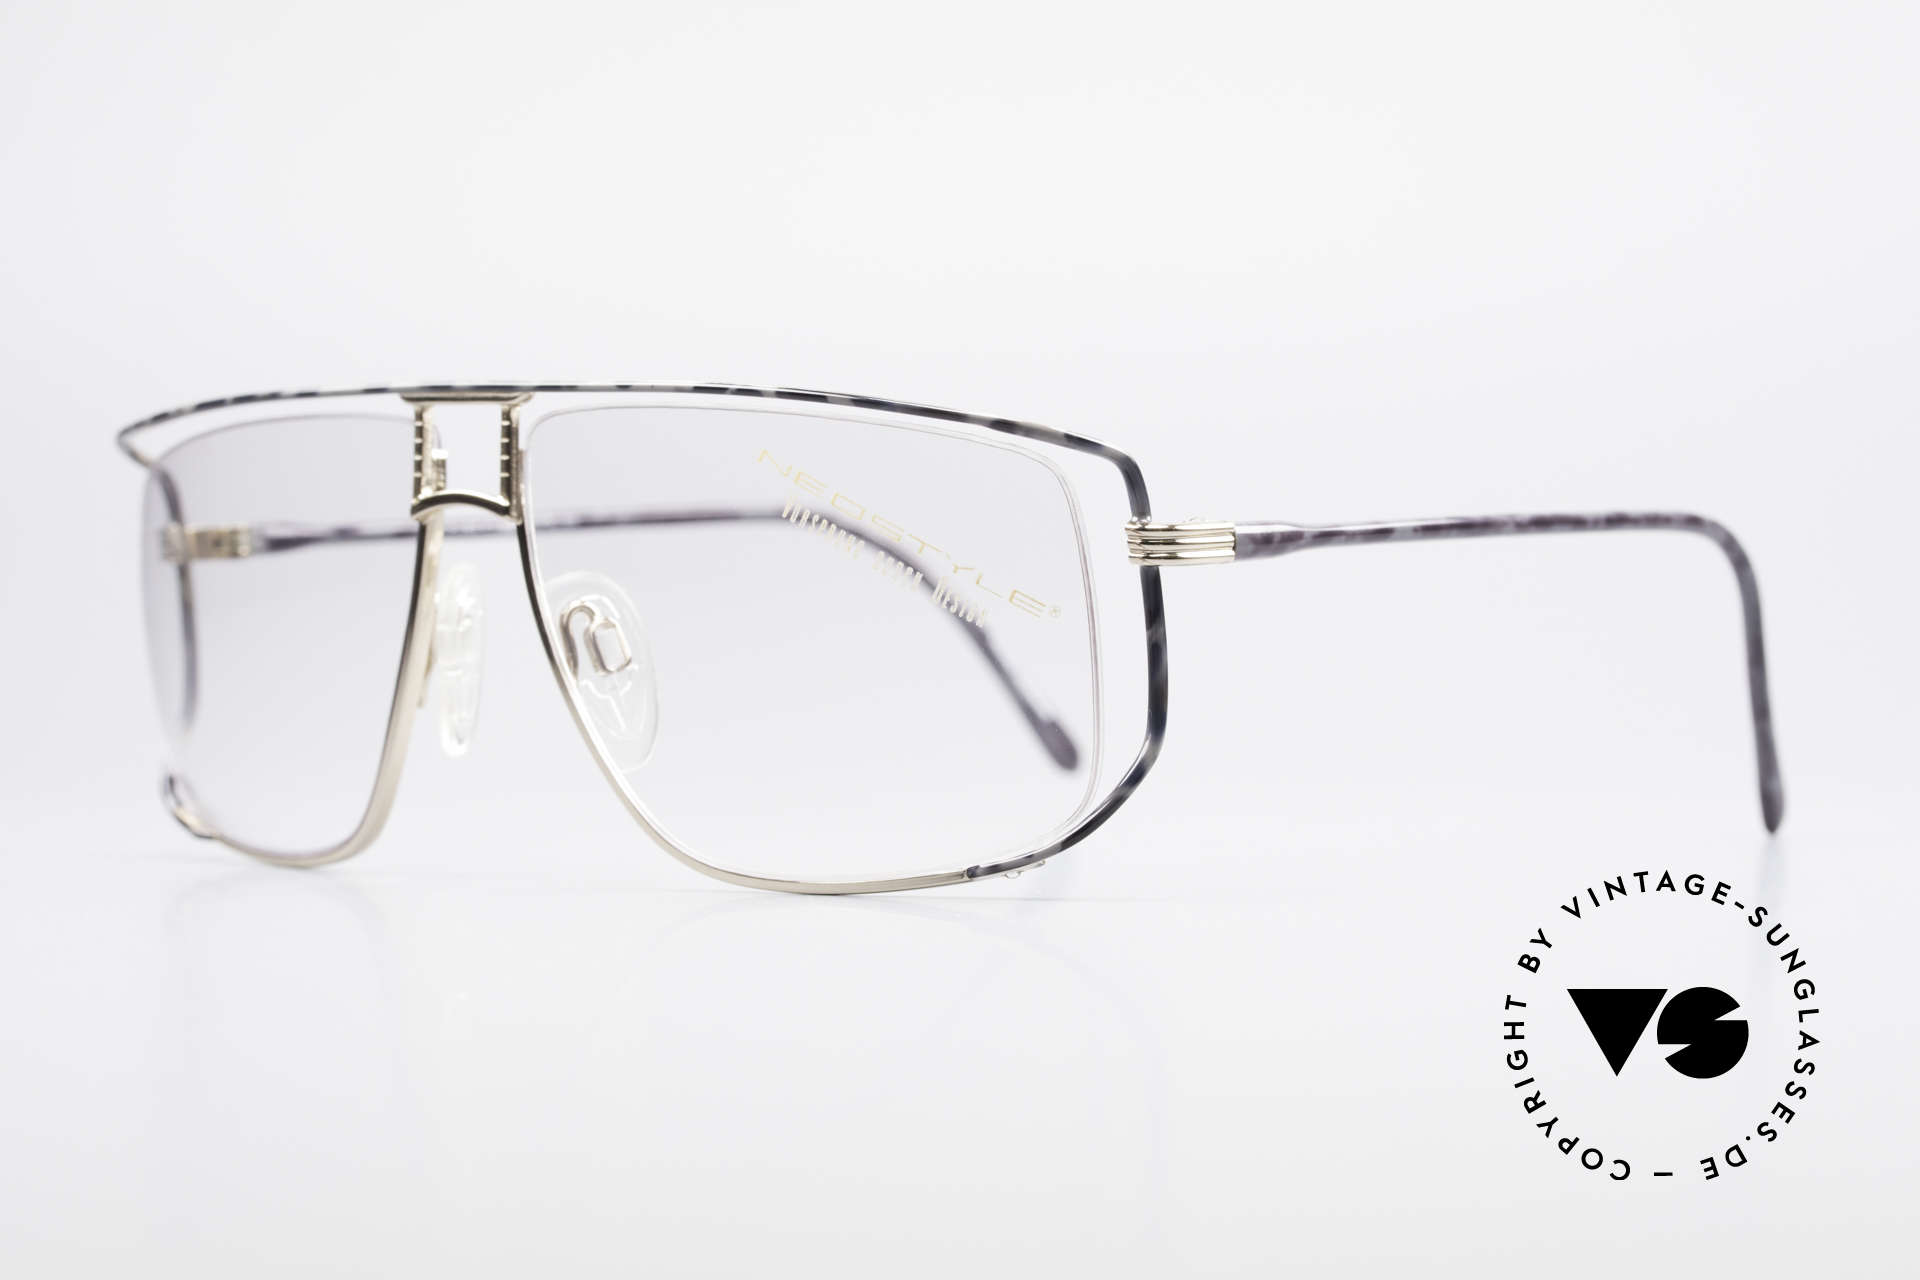 Neostyle Jet 30 Small True Vintage No Retro Frame, half rimless (nylor thread) for 1. class wearing comfort, Made for Men and Women